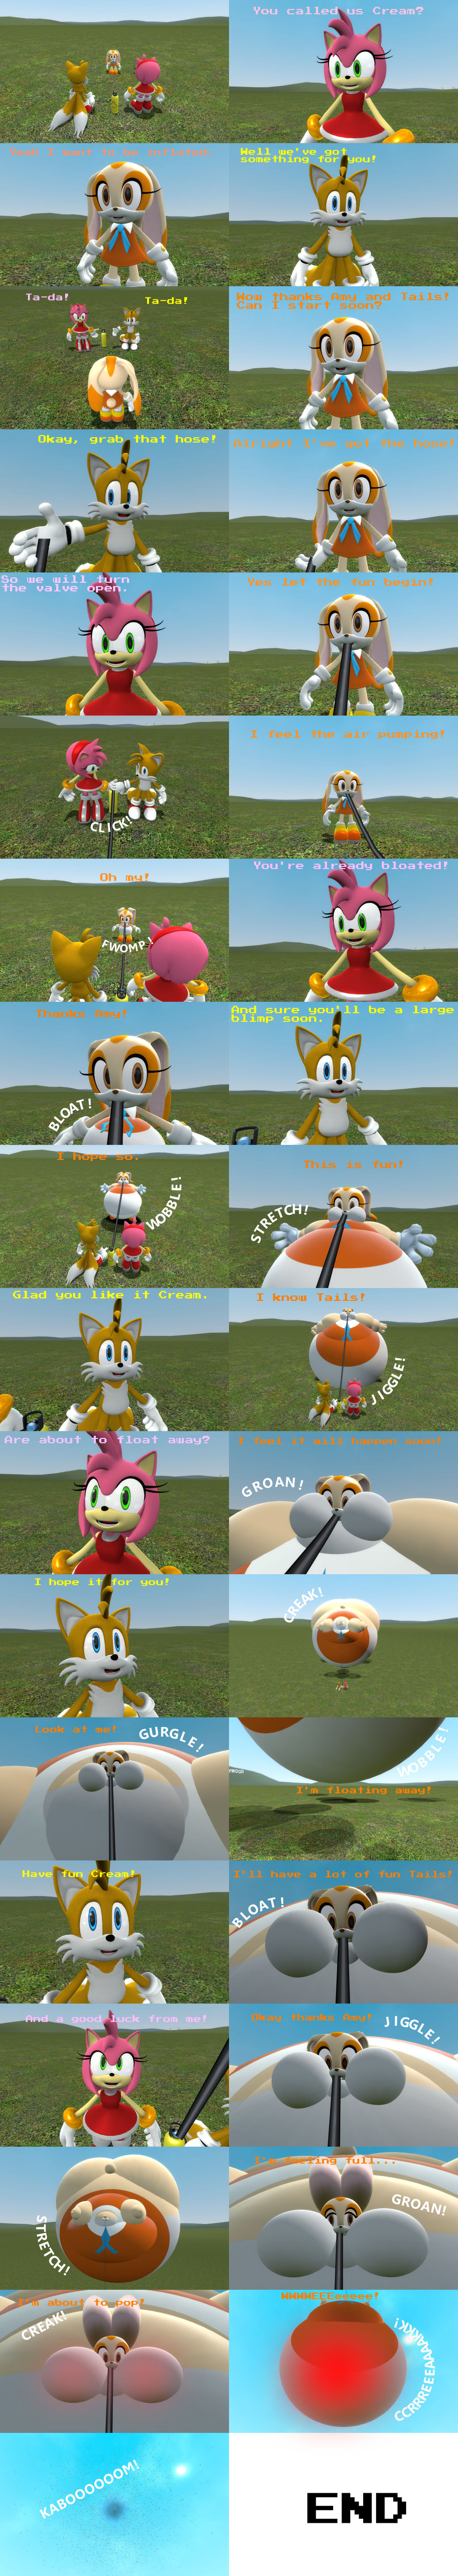 Amy And Tails Inflates Cream Comic By Srx1995 On Deviantart